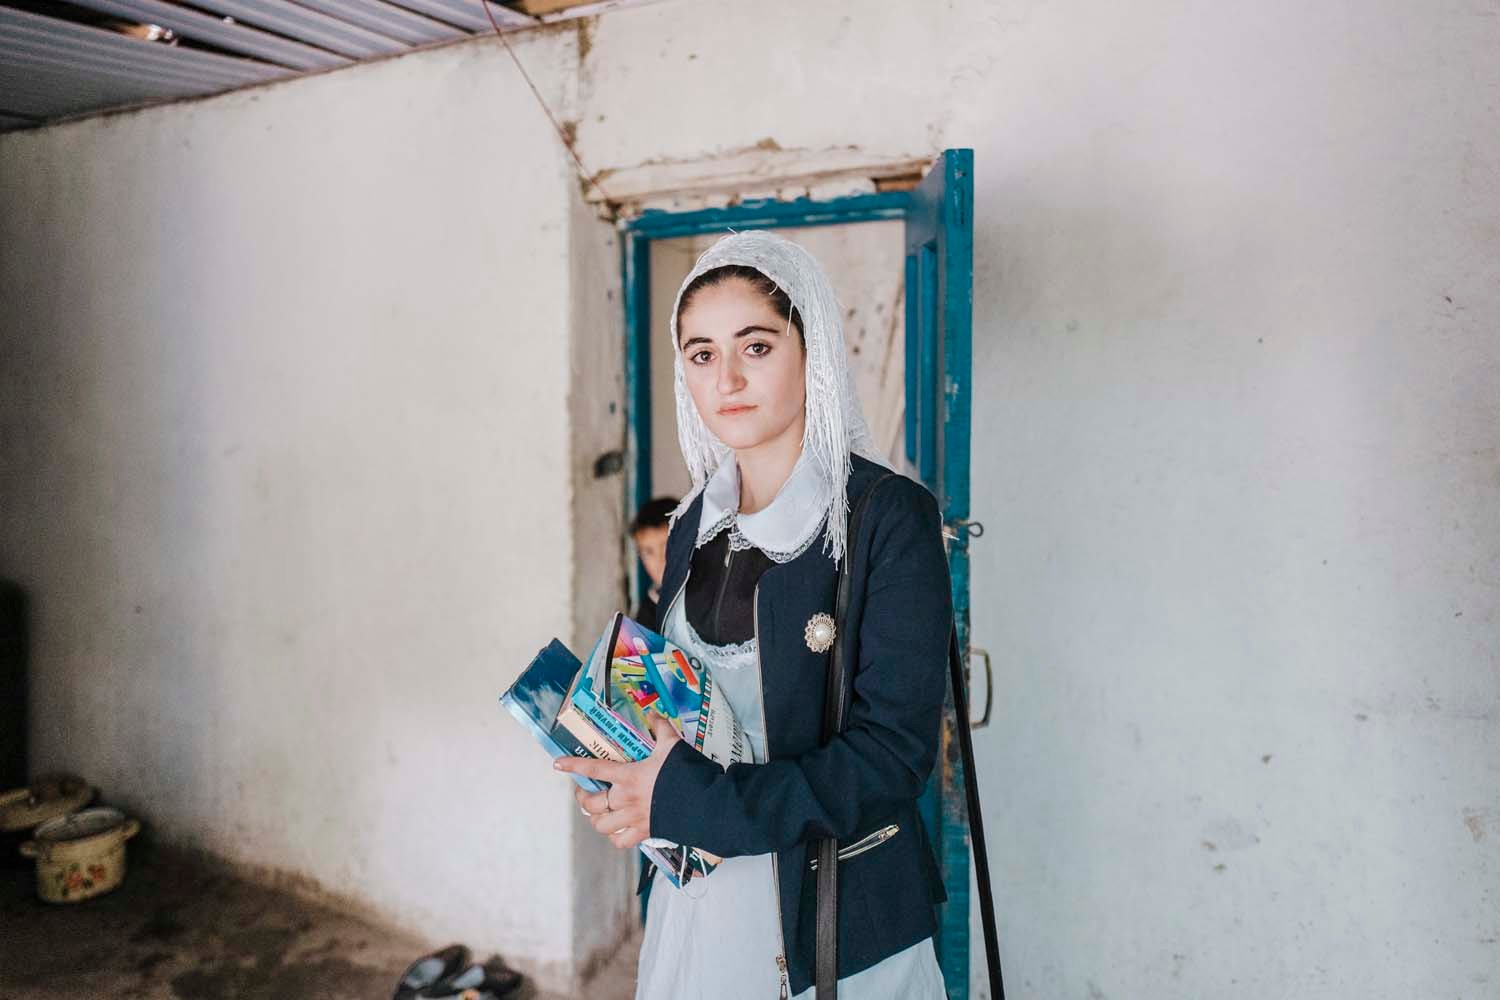 A student in the Pamir mountains